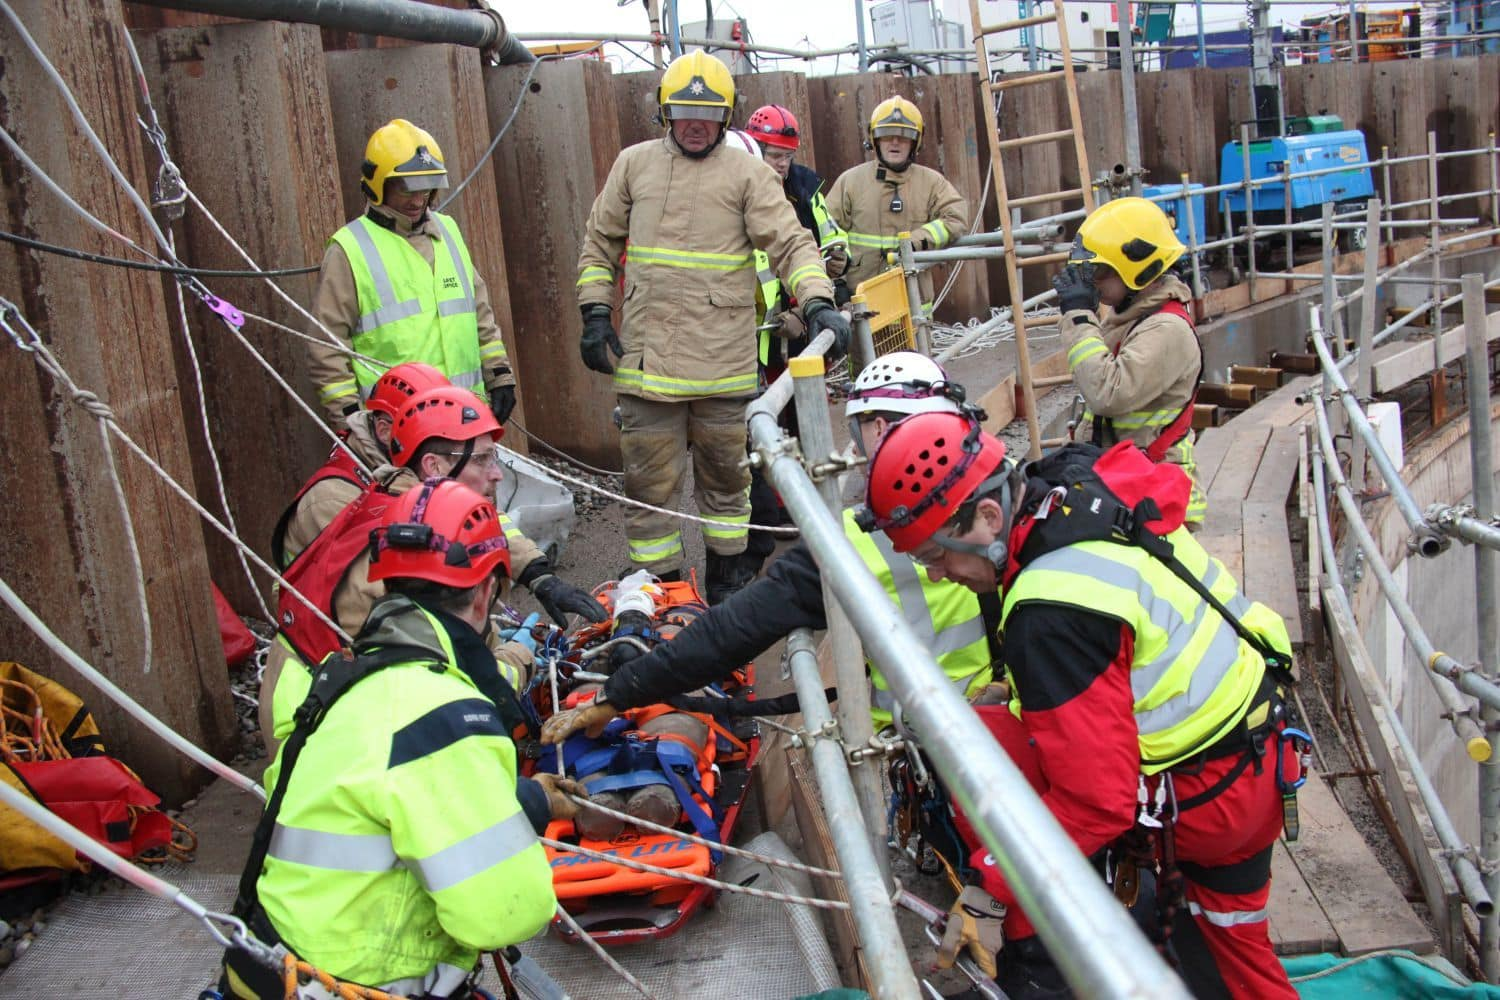 Fire and rescue service carry out mock rescue